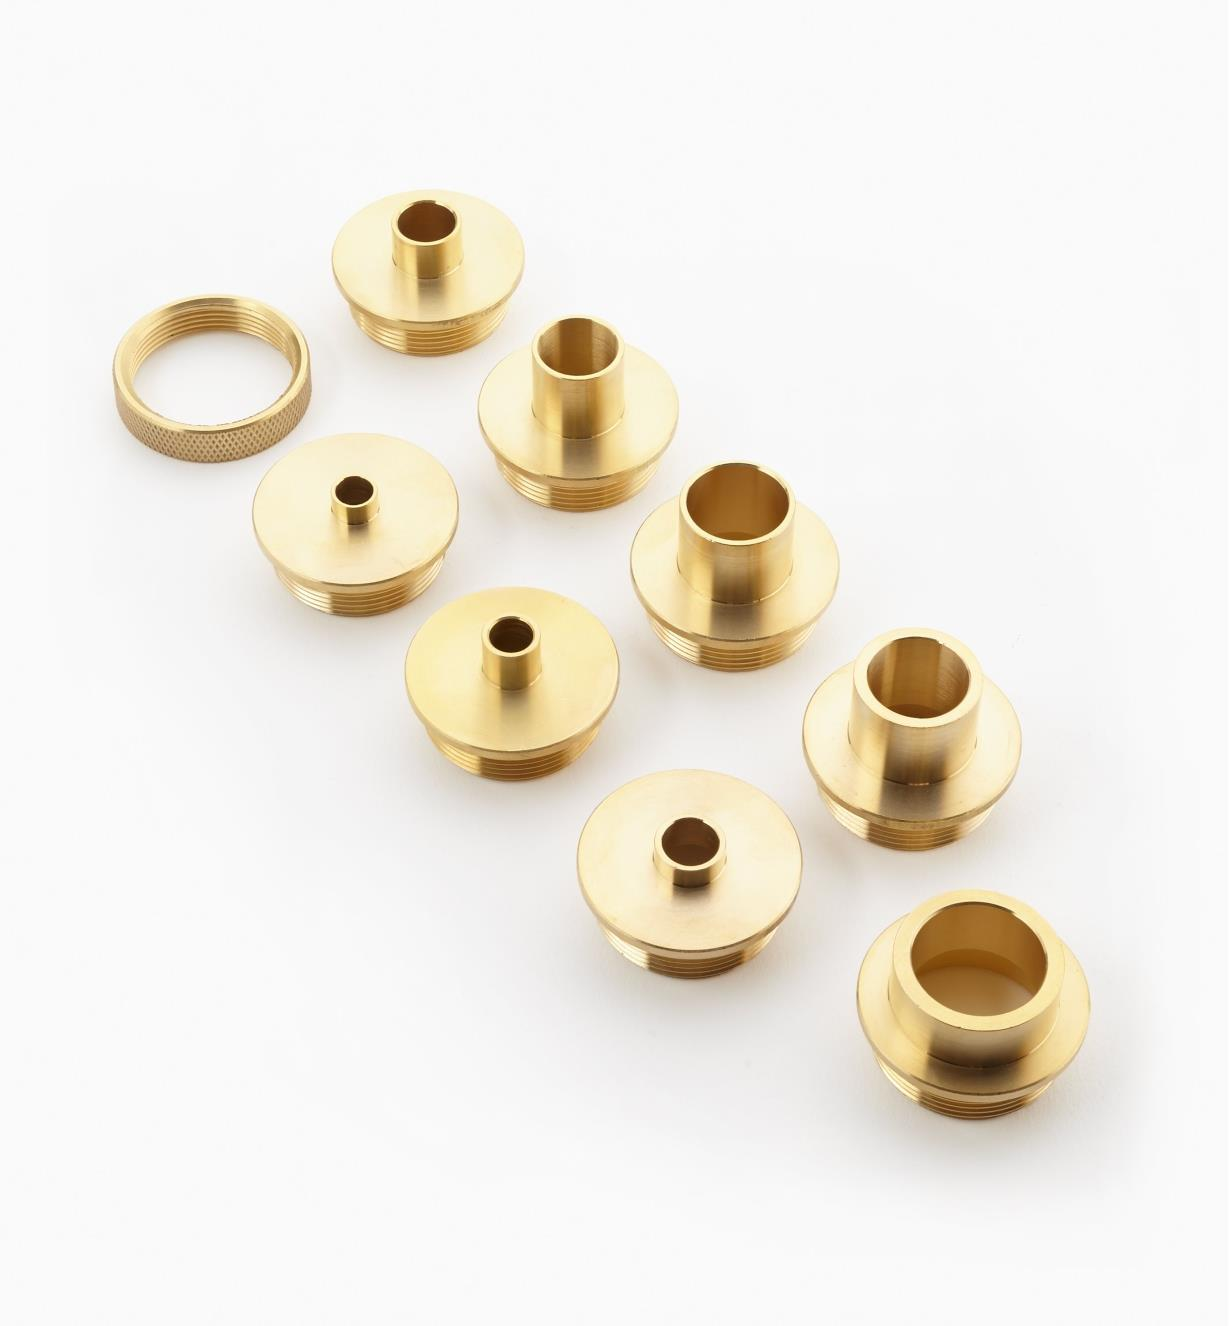 46J9120 - Set of 8 Guides & Ring Nut